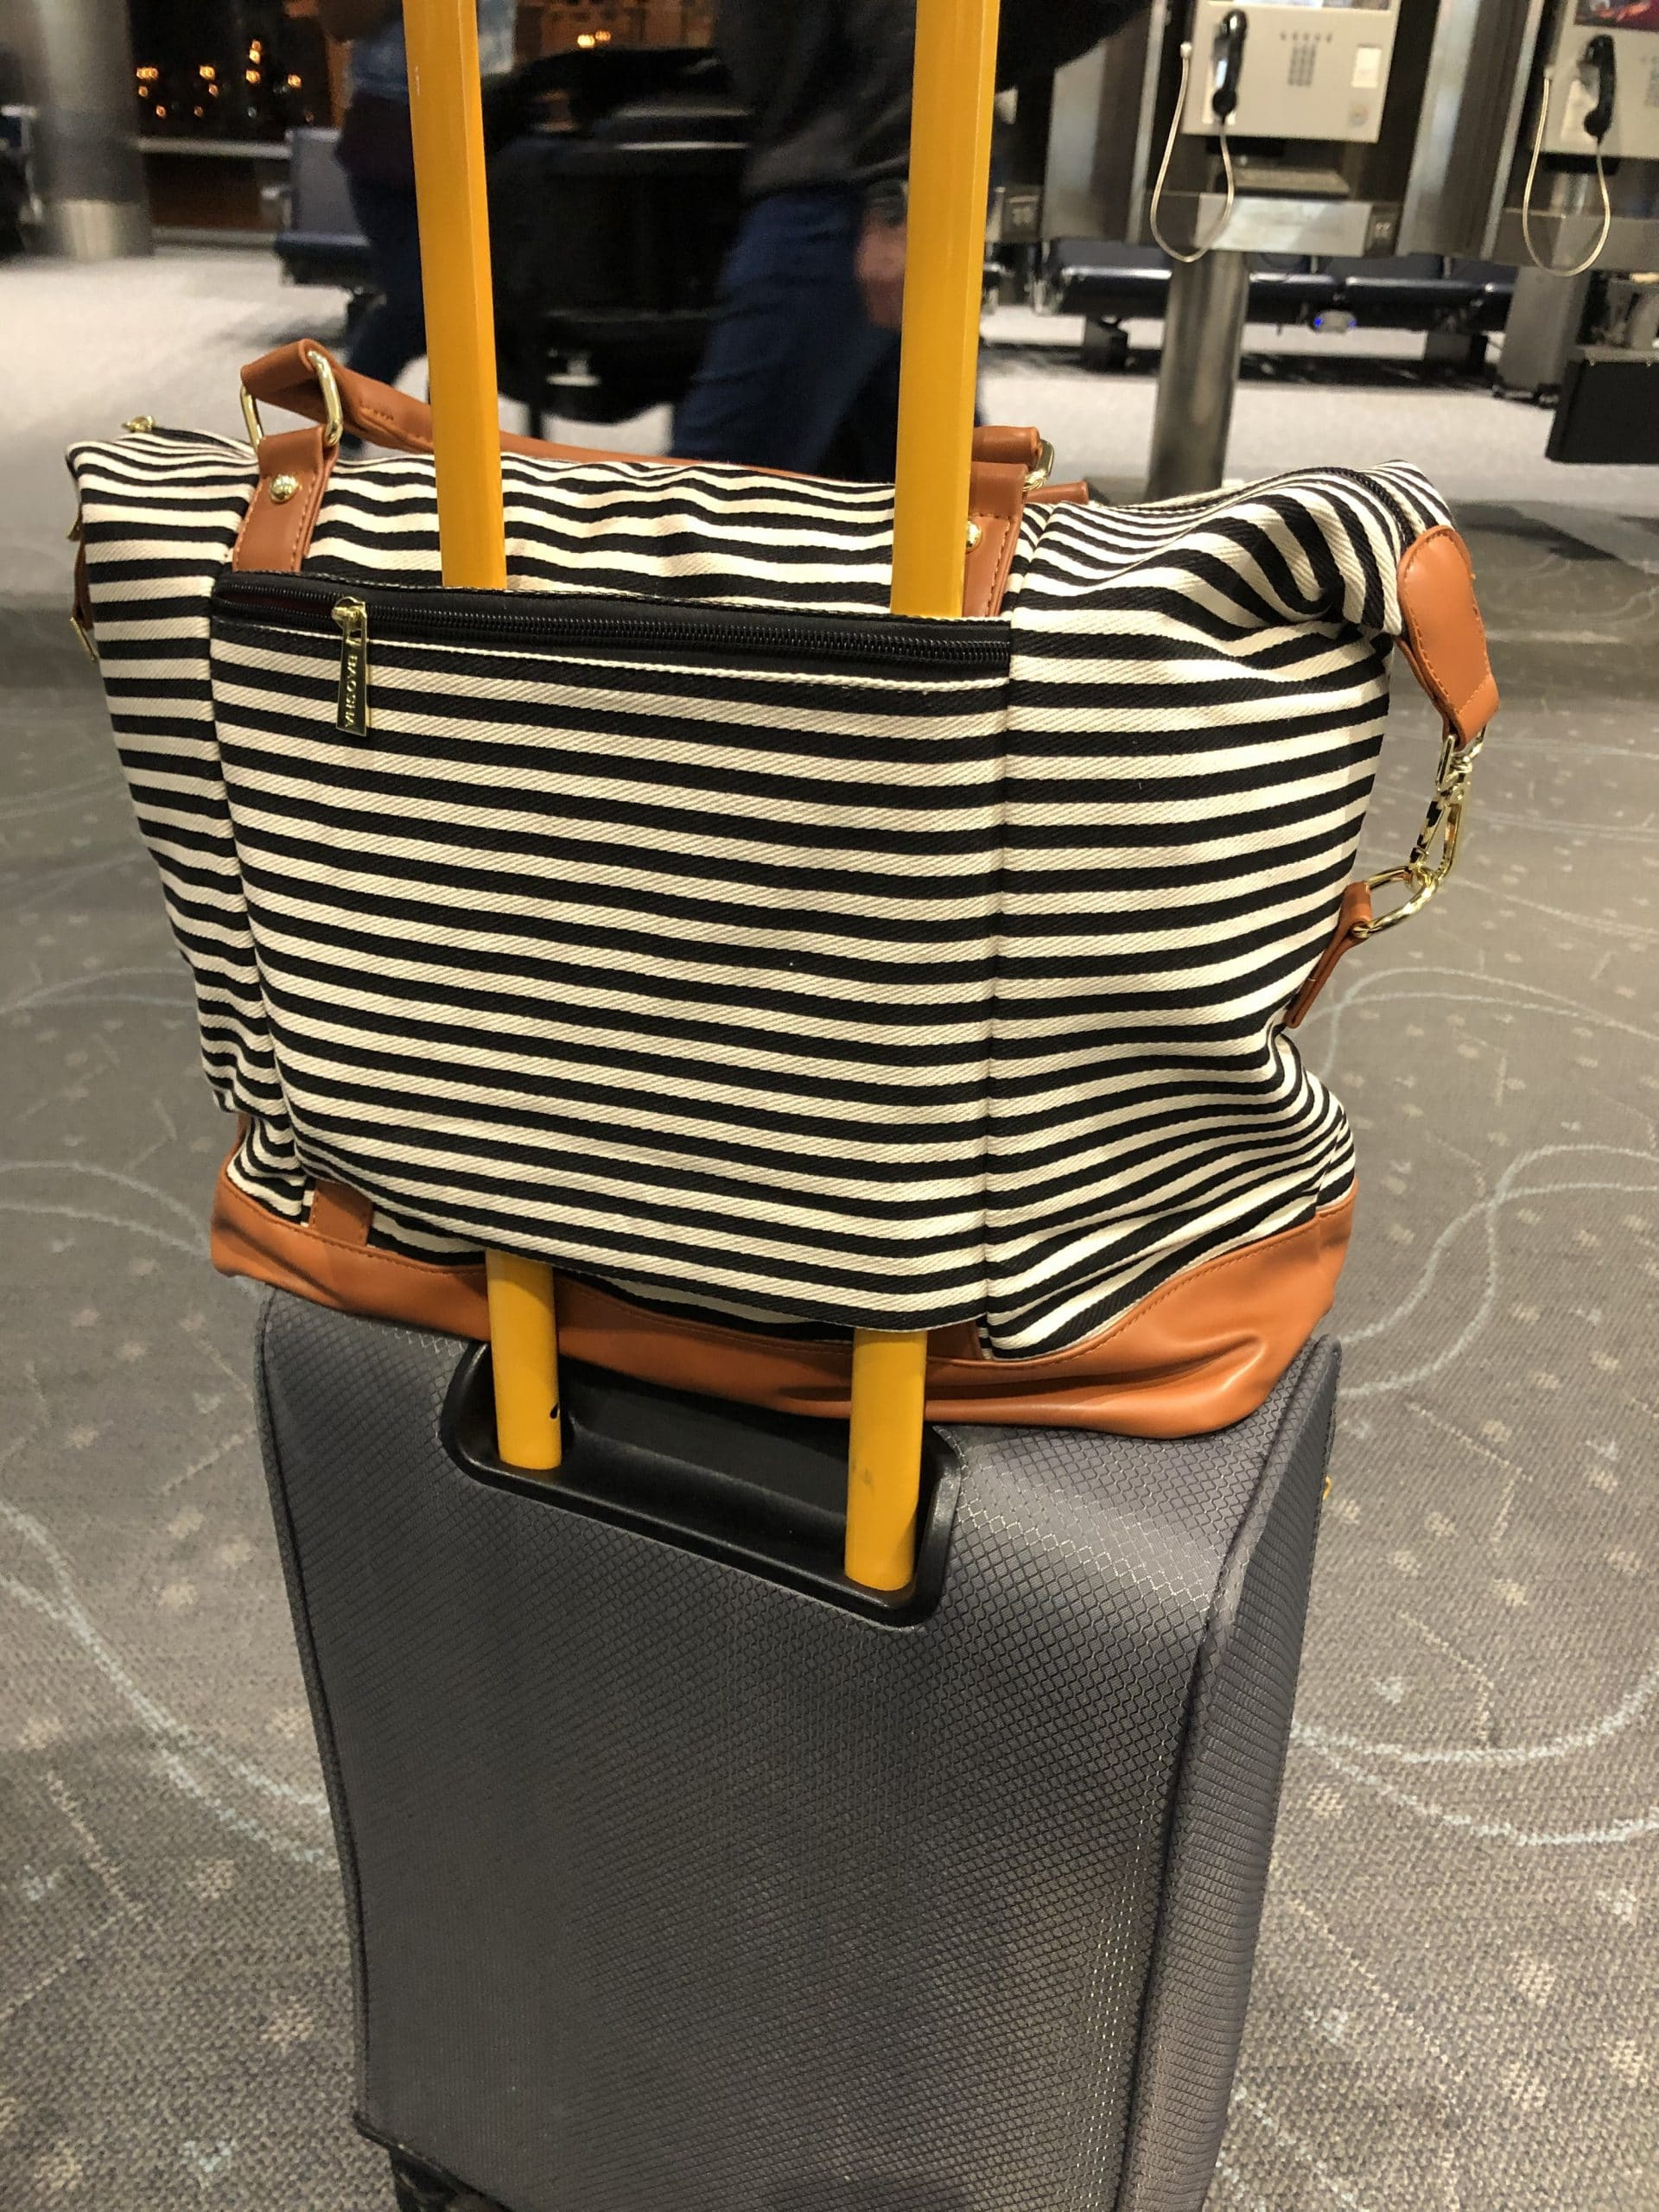 striped bag on top of suitcase